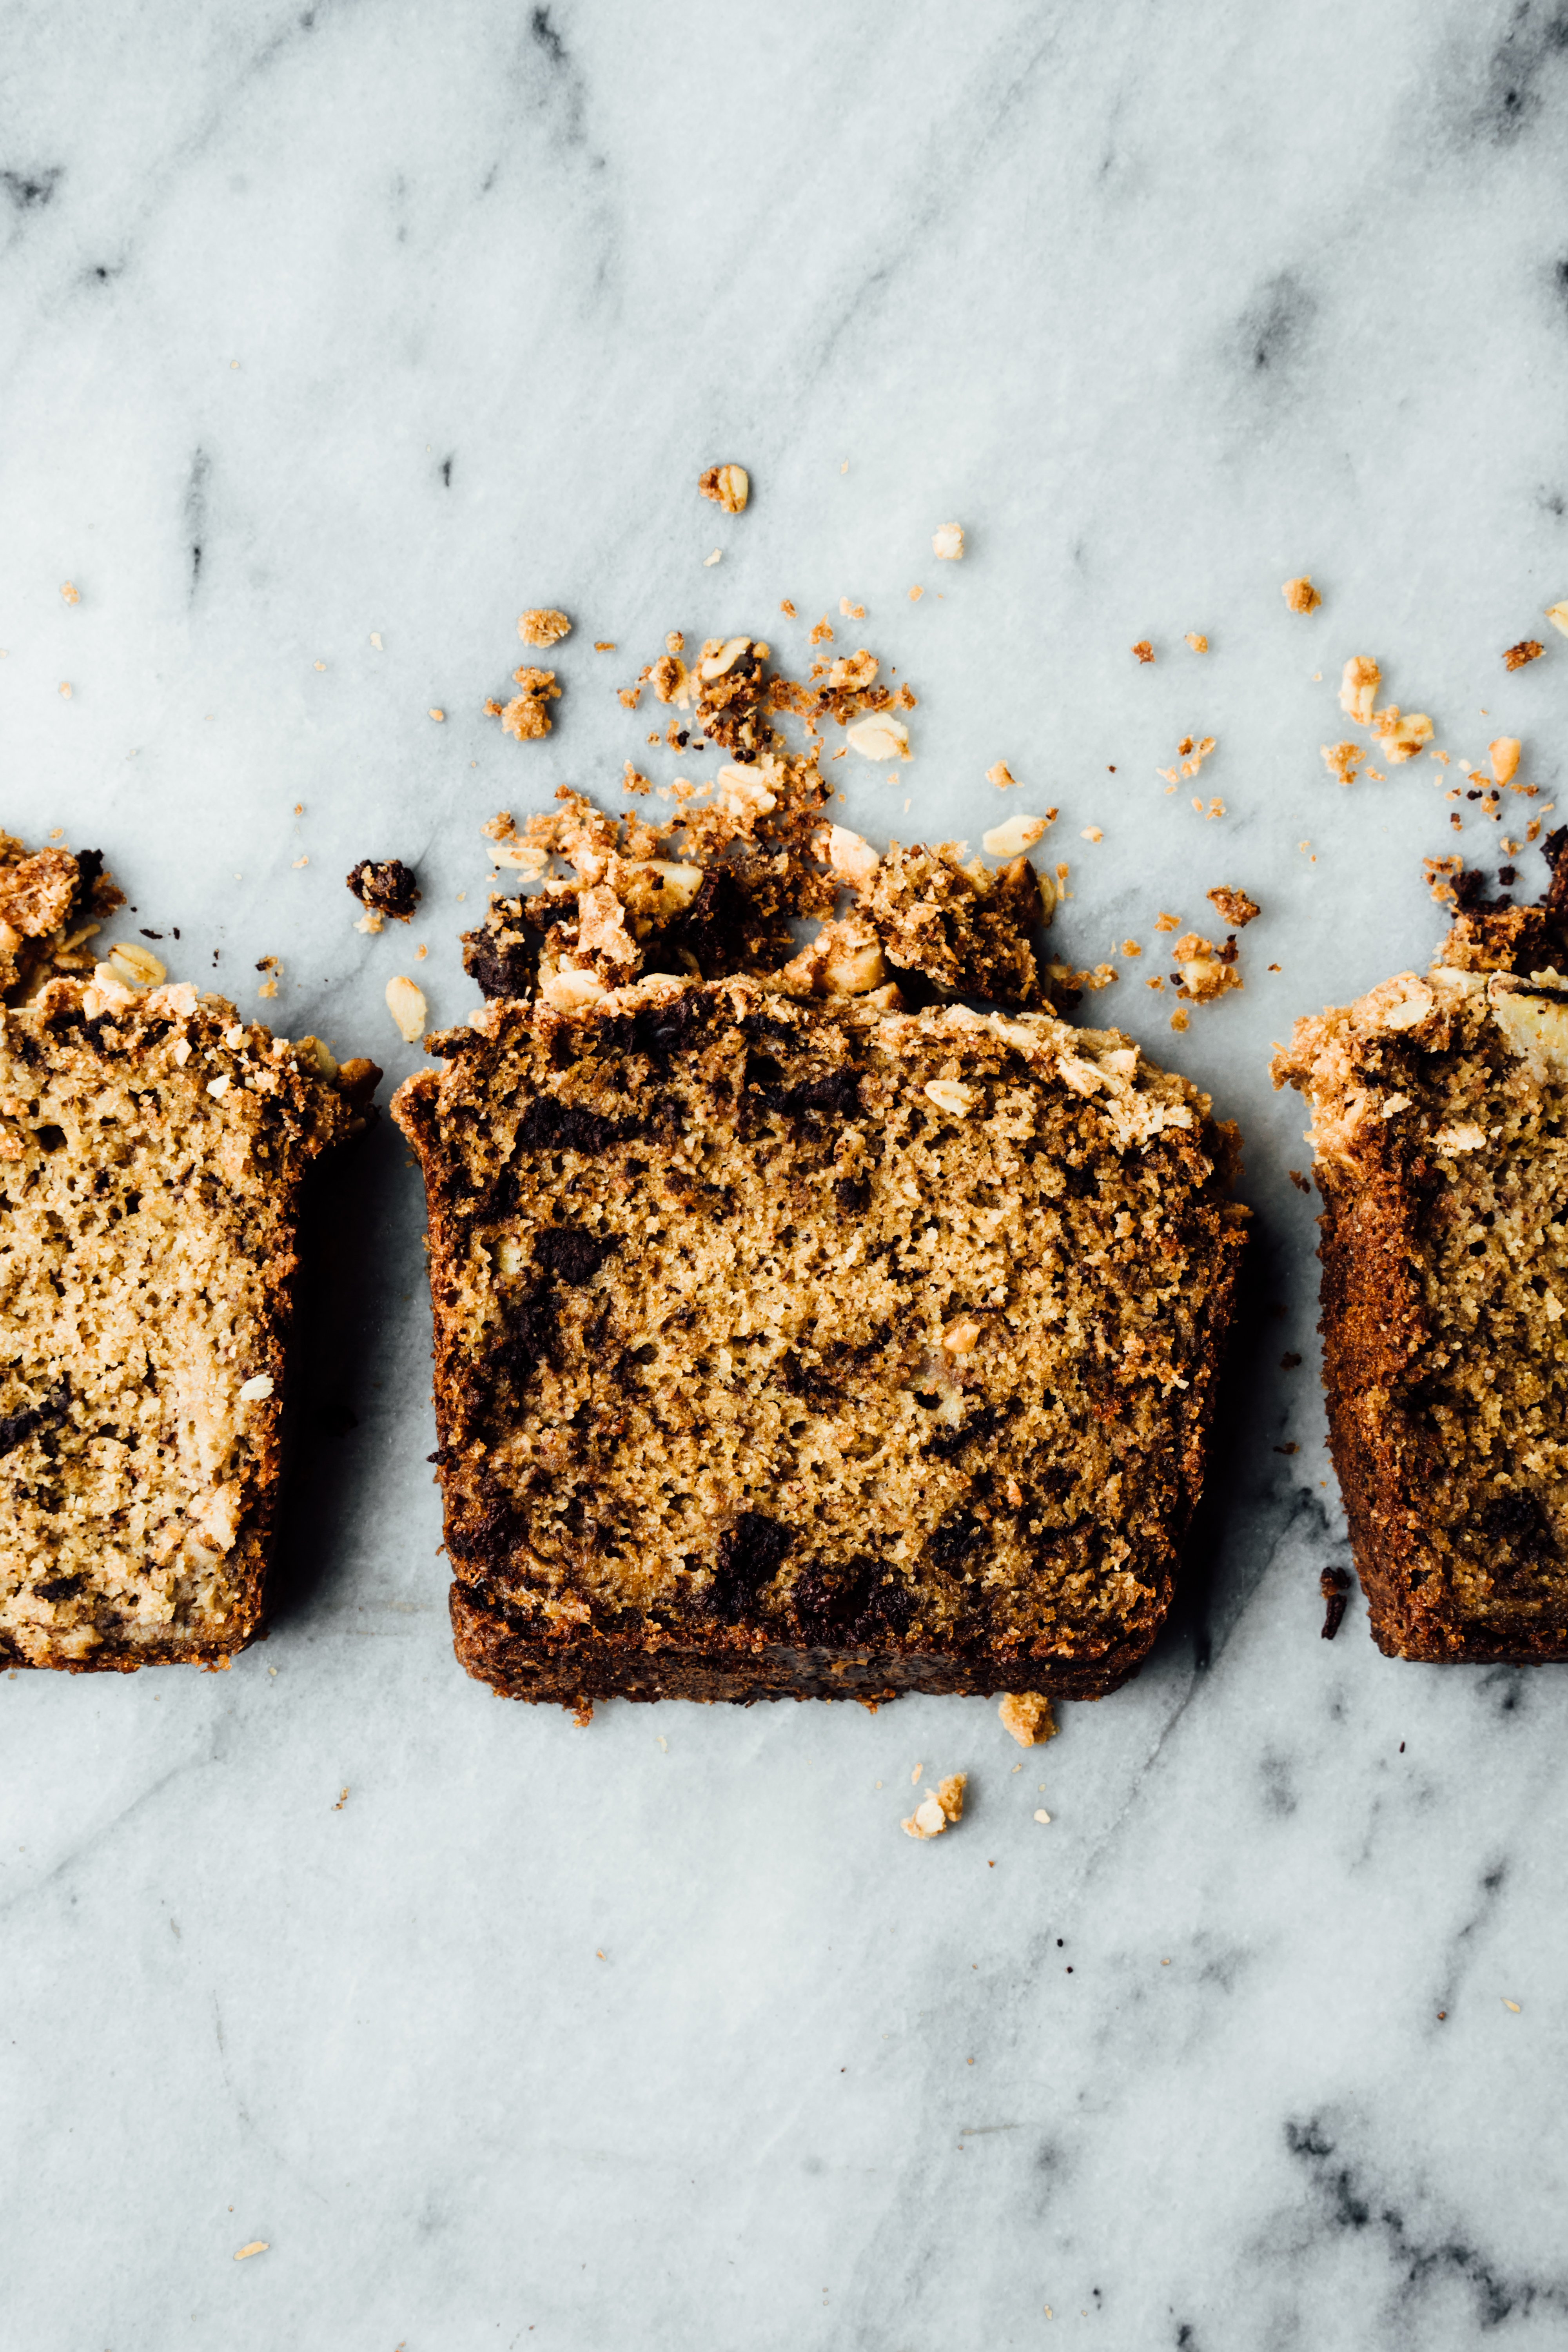 Chocolate Chip Banana Bread with Coconut Macadamia Nut Streusel | TENDING the TABLE